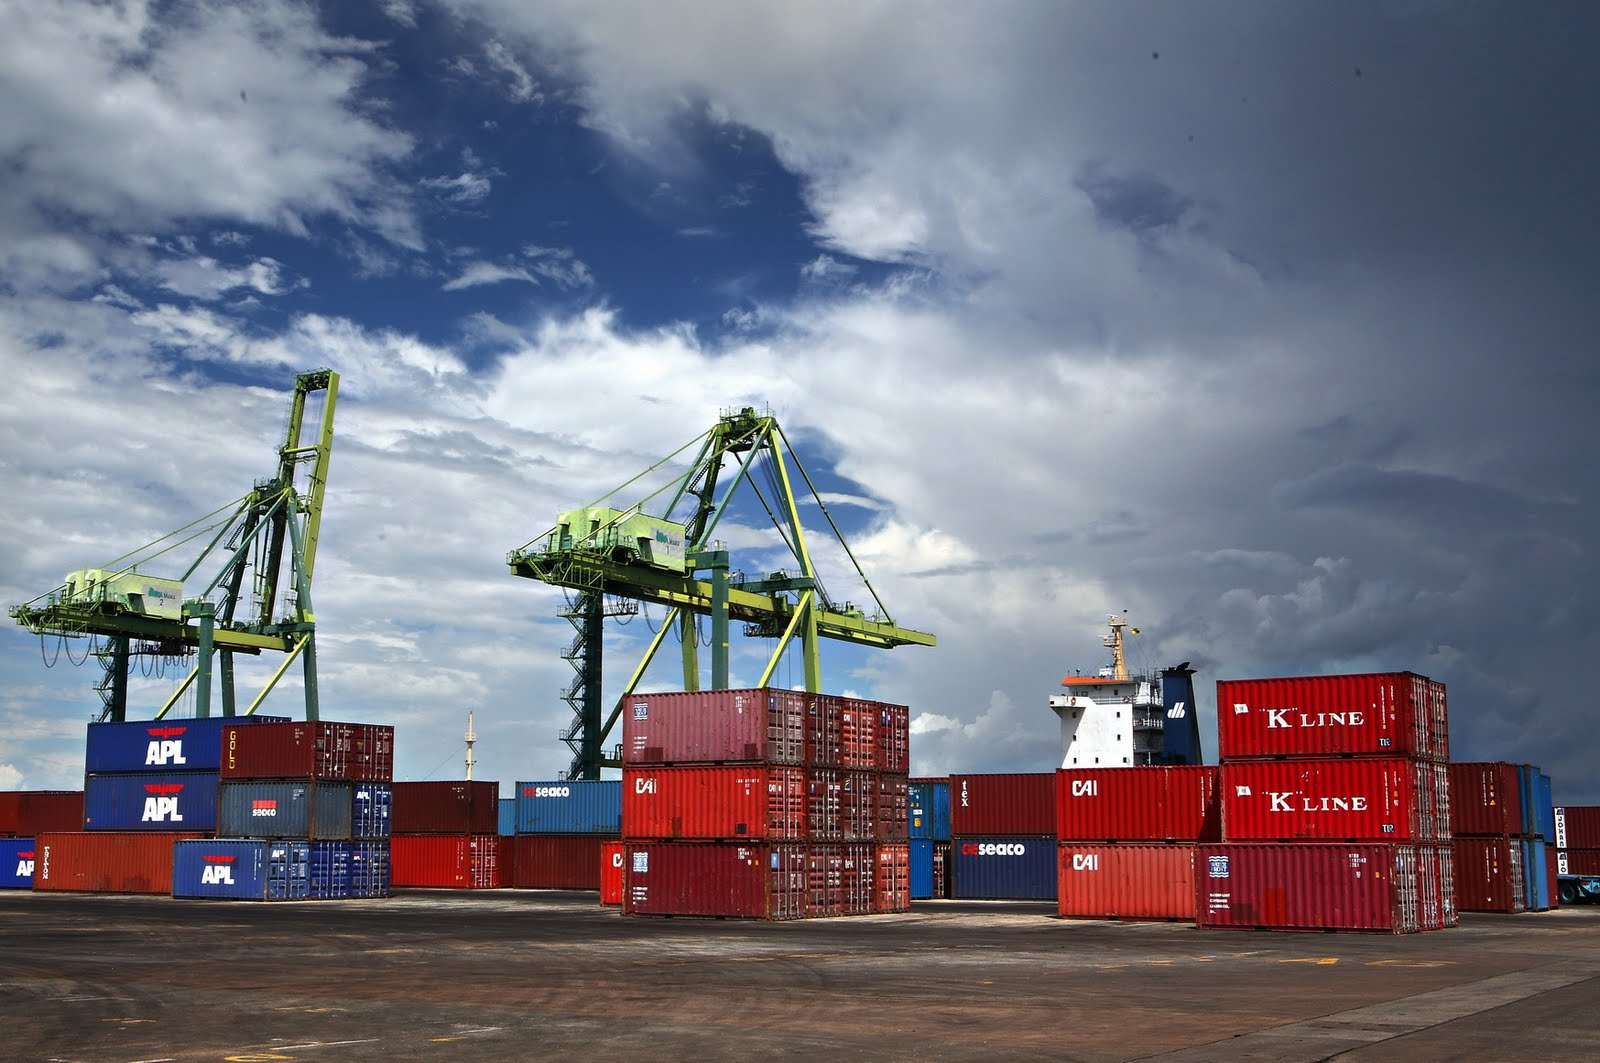 containers-arriving-at-the-brunei-container-port-are-being-piled-up